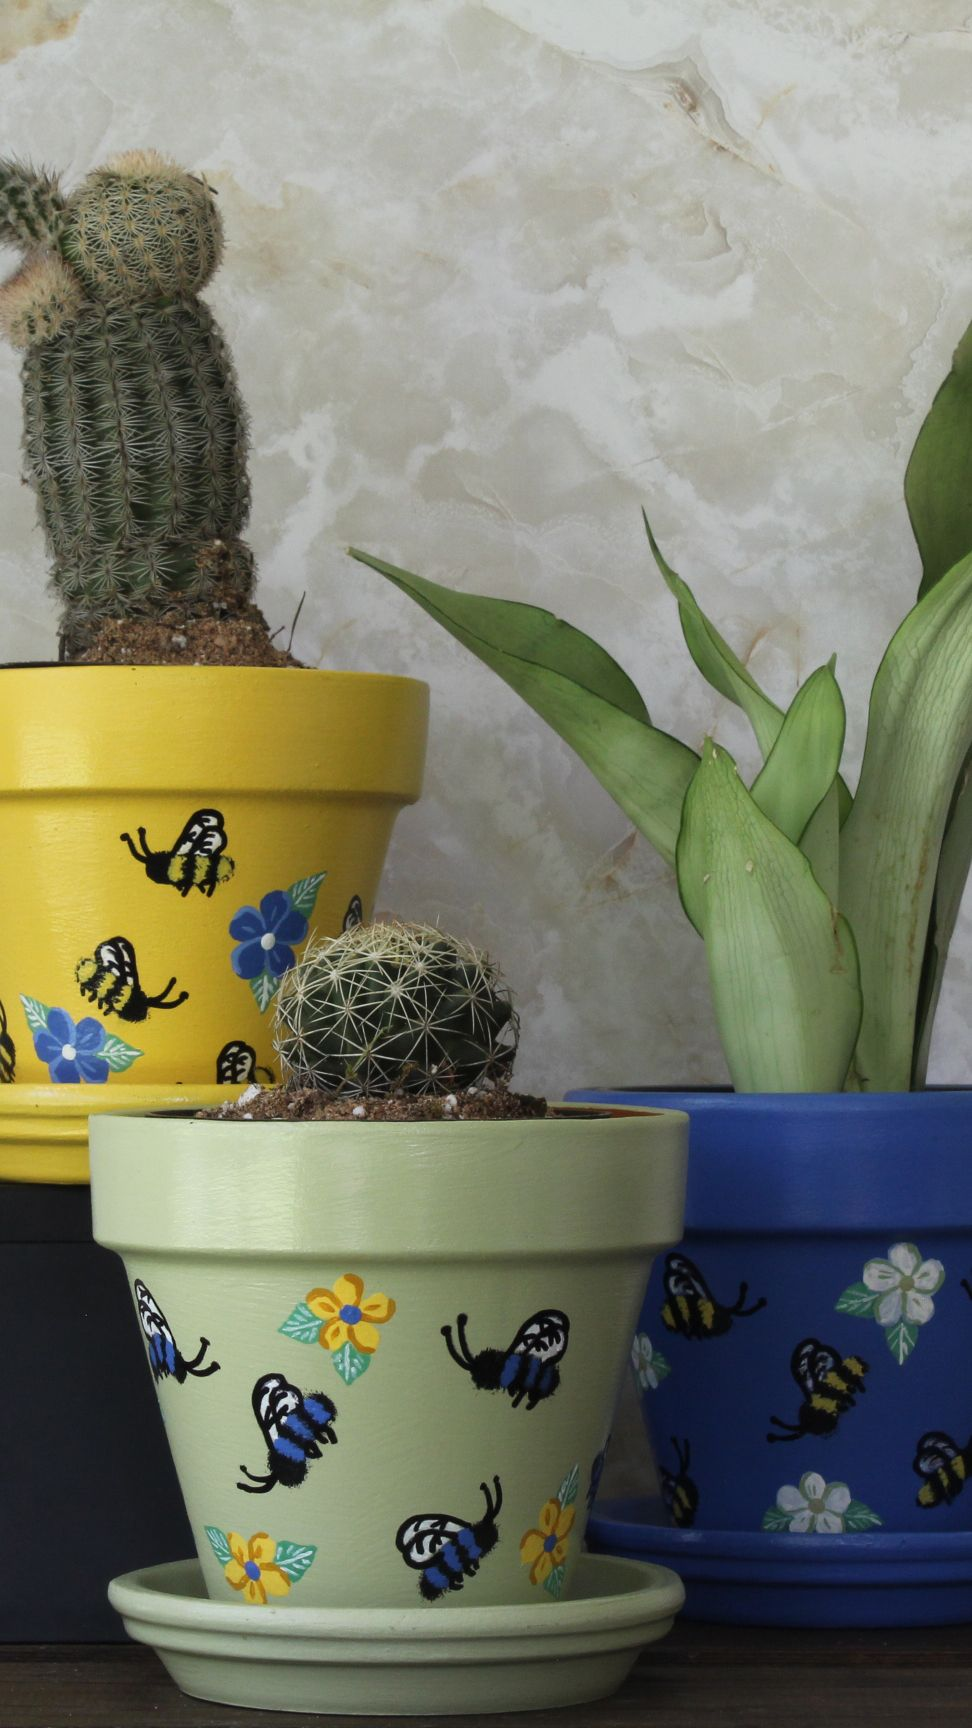 Spring Bee Buzz Classic Blue Flower Pot Small 4 Inch Hand Etsy In 2020 Painted Flower Pots Small Flower Pots Flower Pots